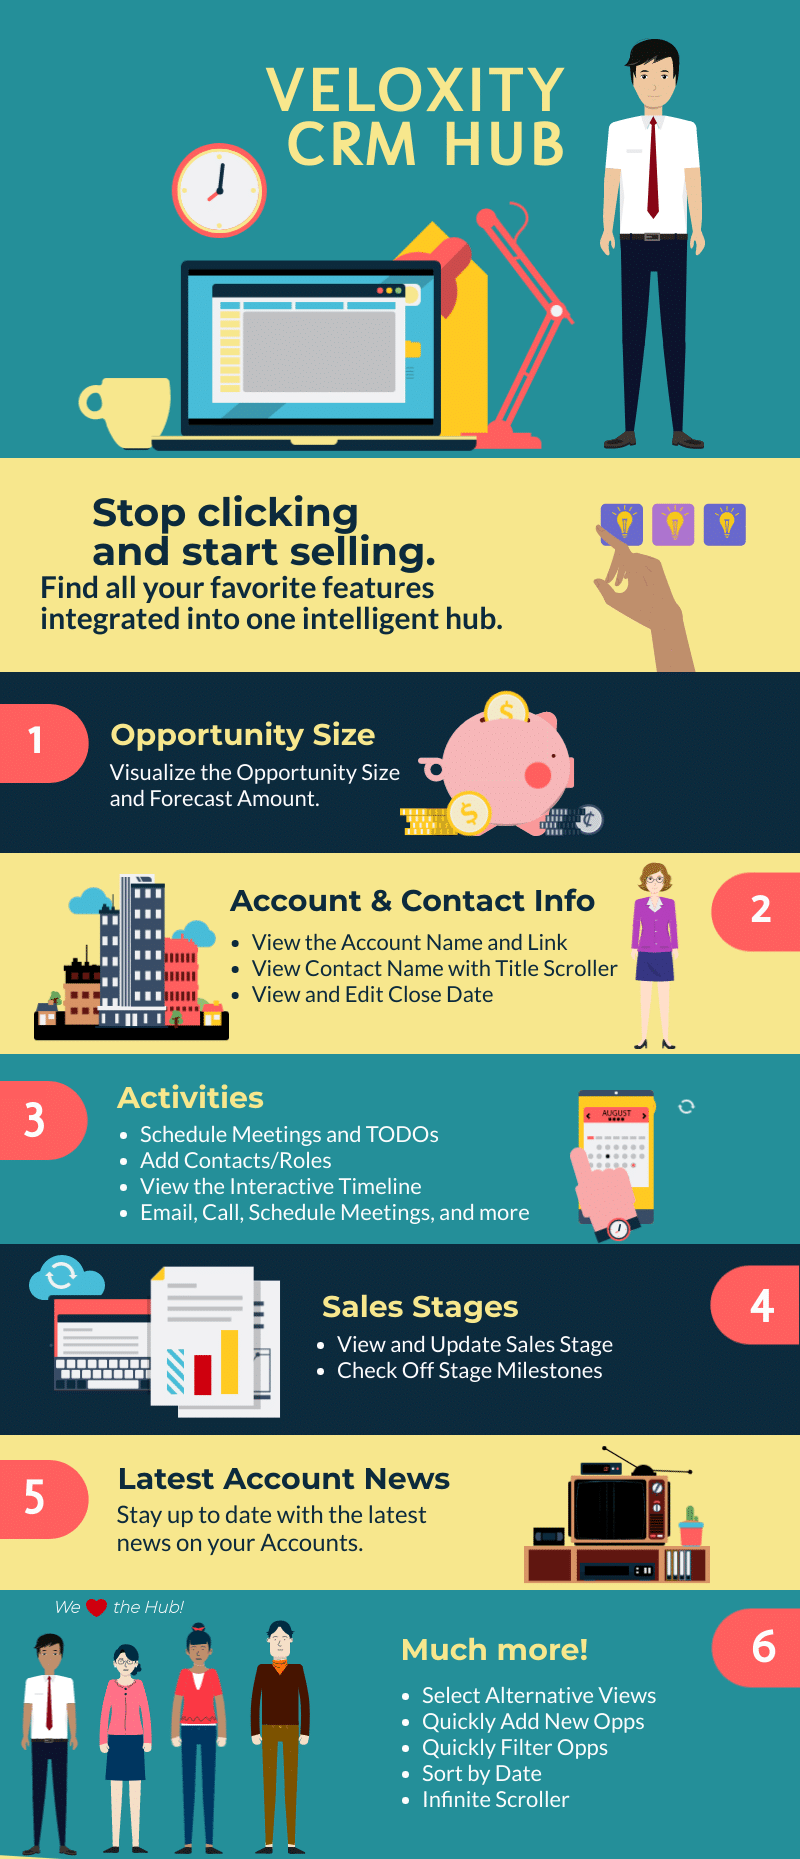 Infographic demonstrating tools to increase sales team efficiency using the Veloxity CRM Hub.